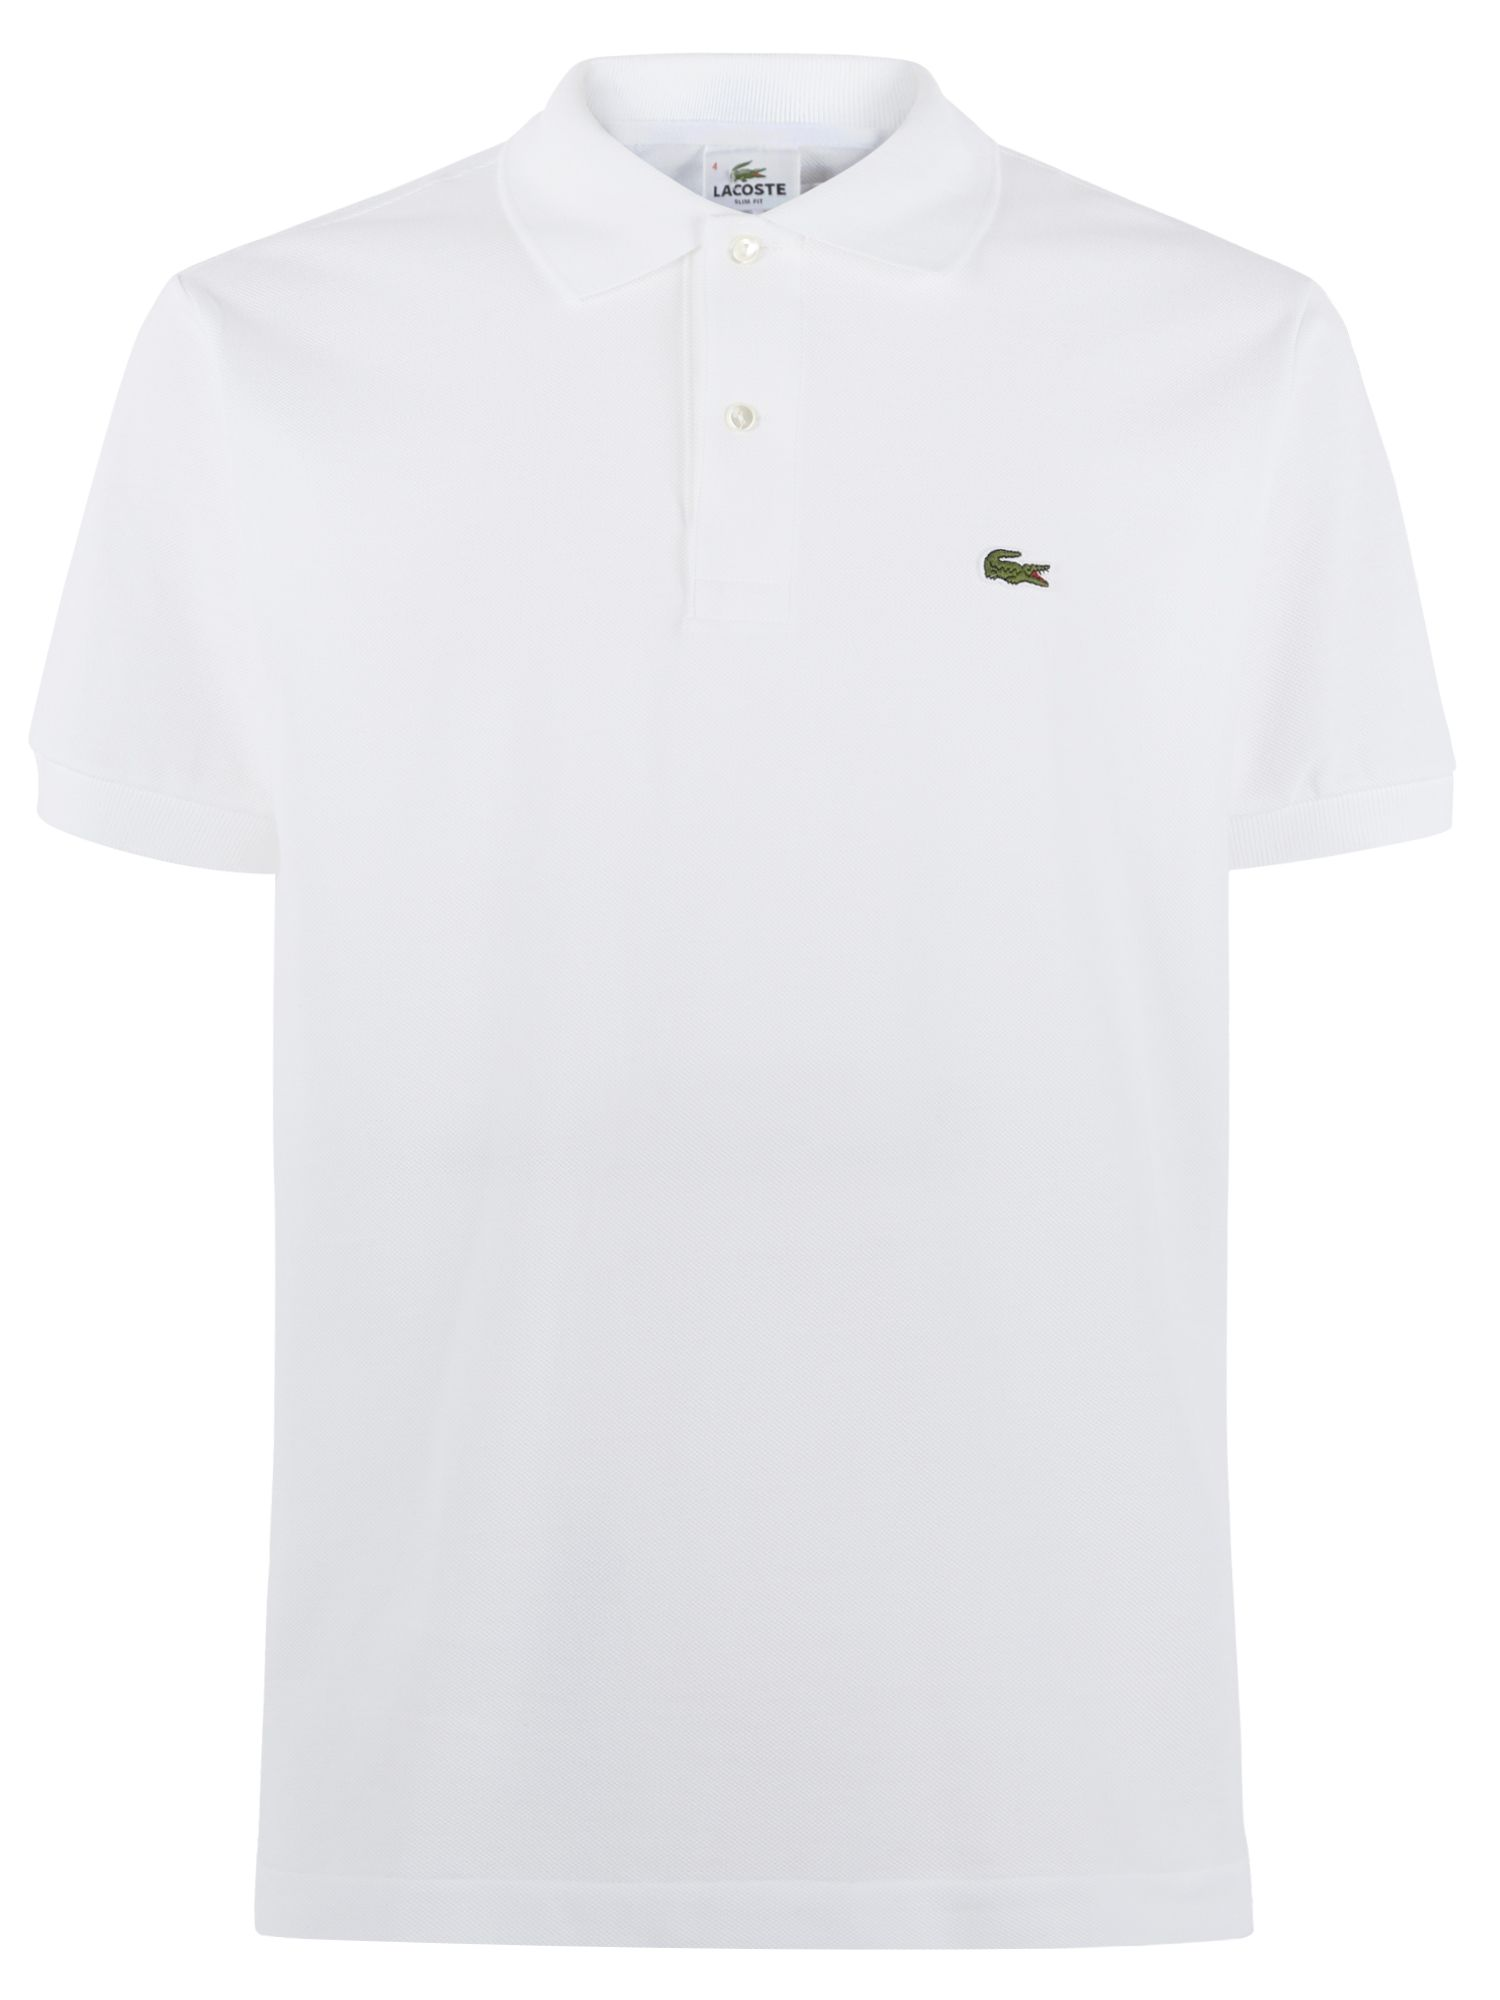 Men's Lacoste Classic L.12.12 Polo, White